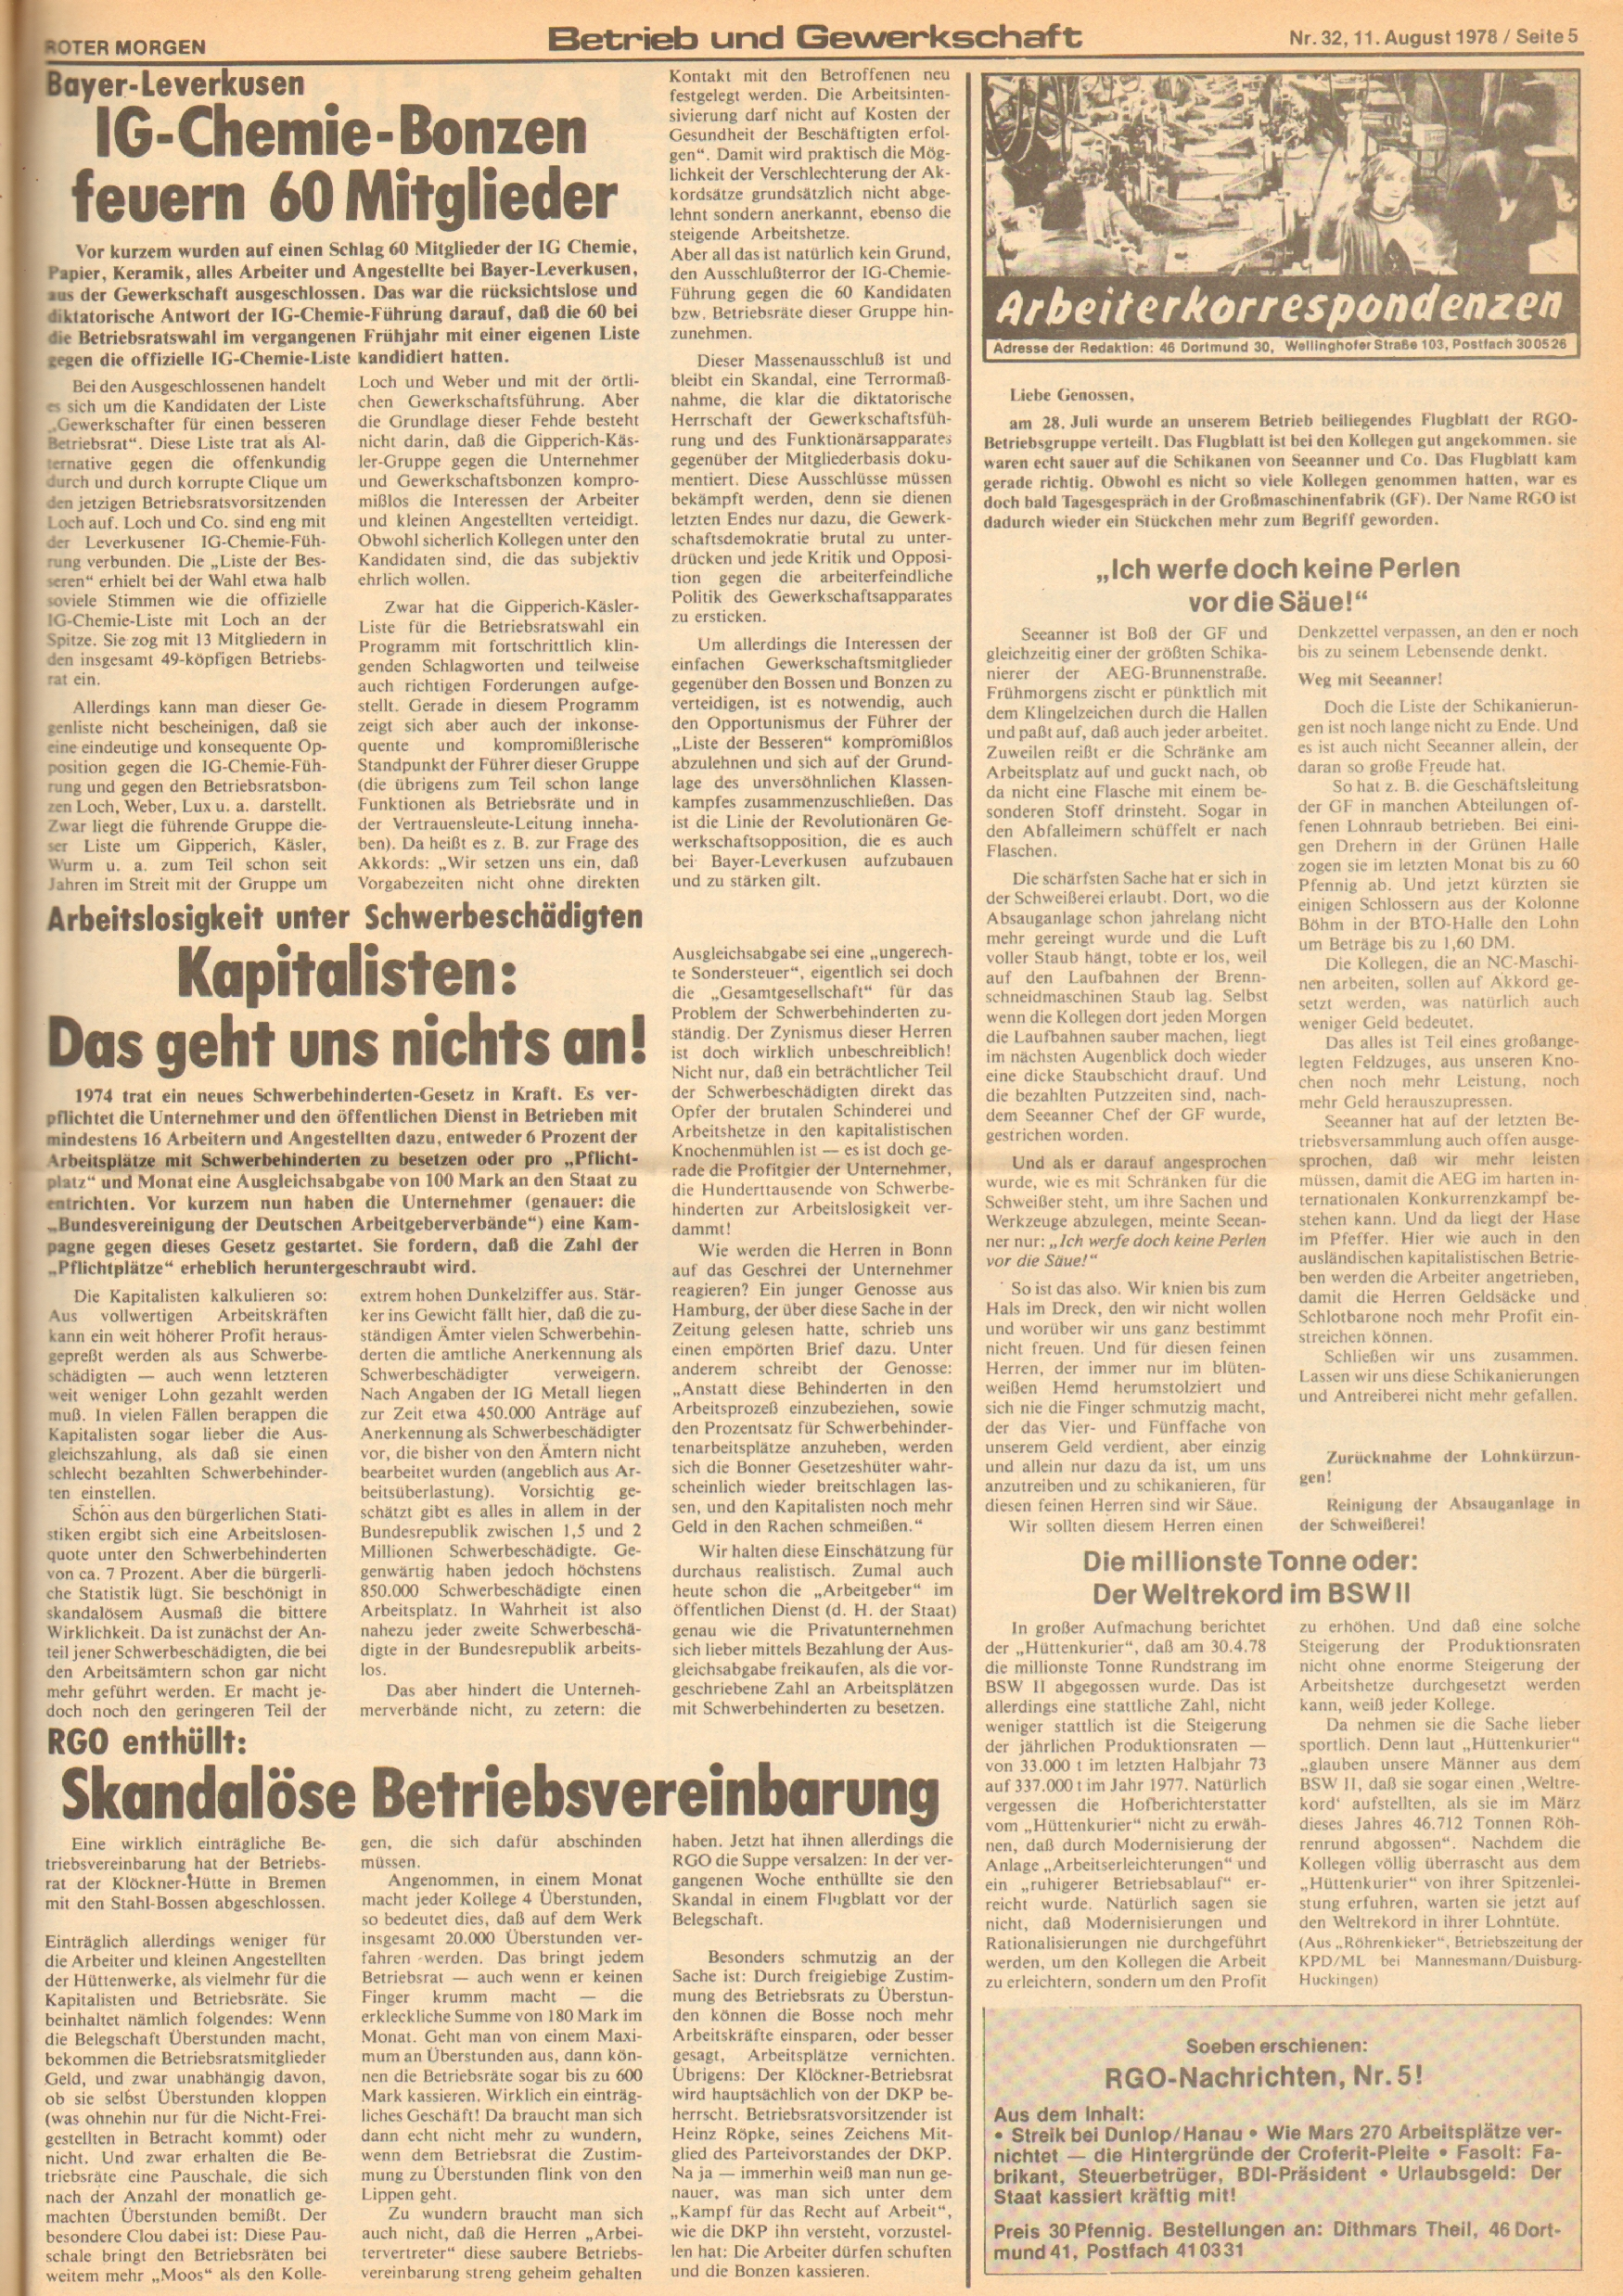 Roter Morgen, 12. Jg., 11. August 1978, Nr. 32, Seite 5